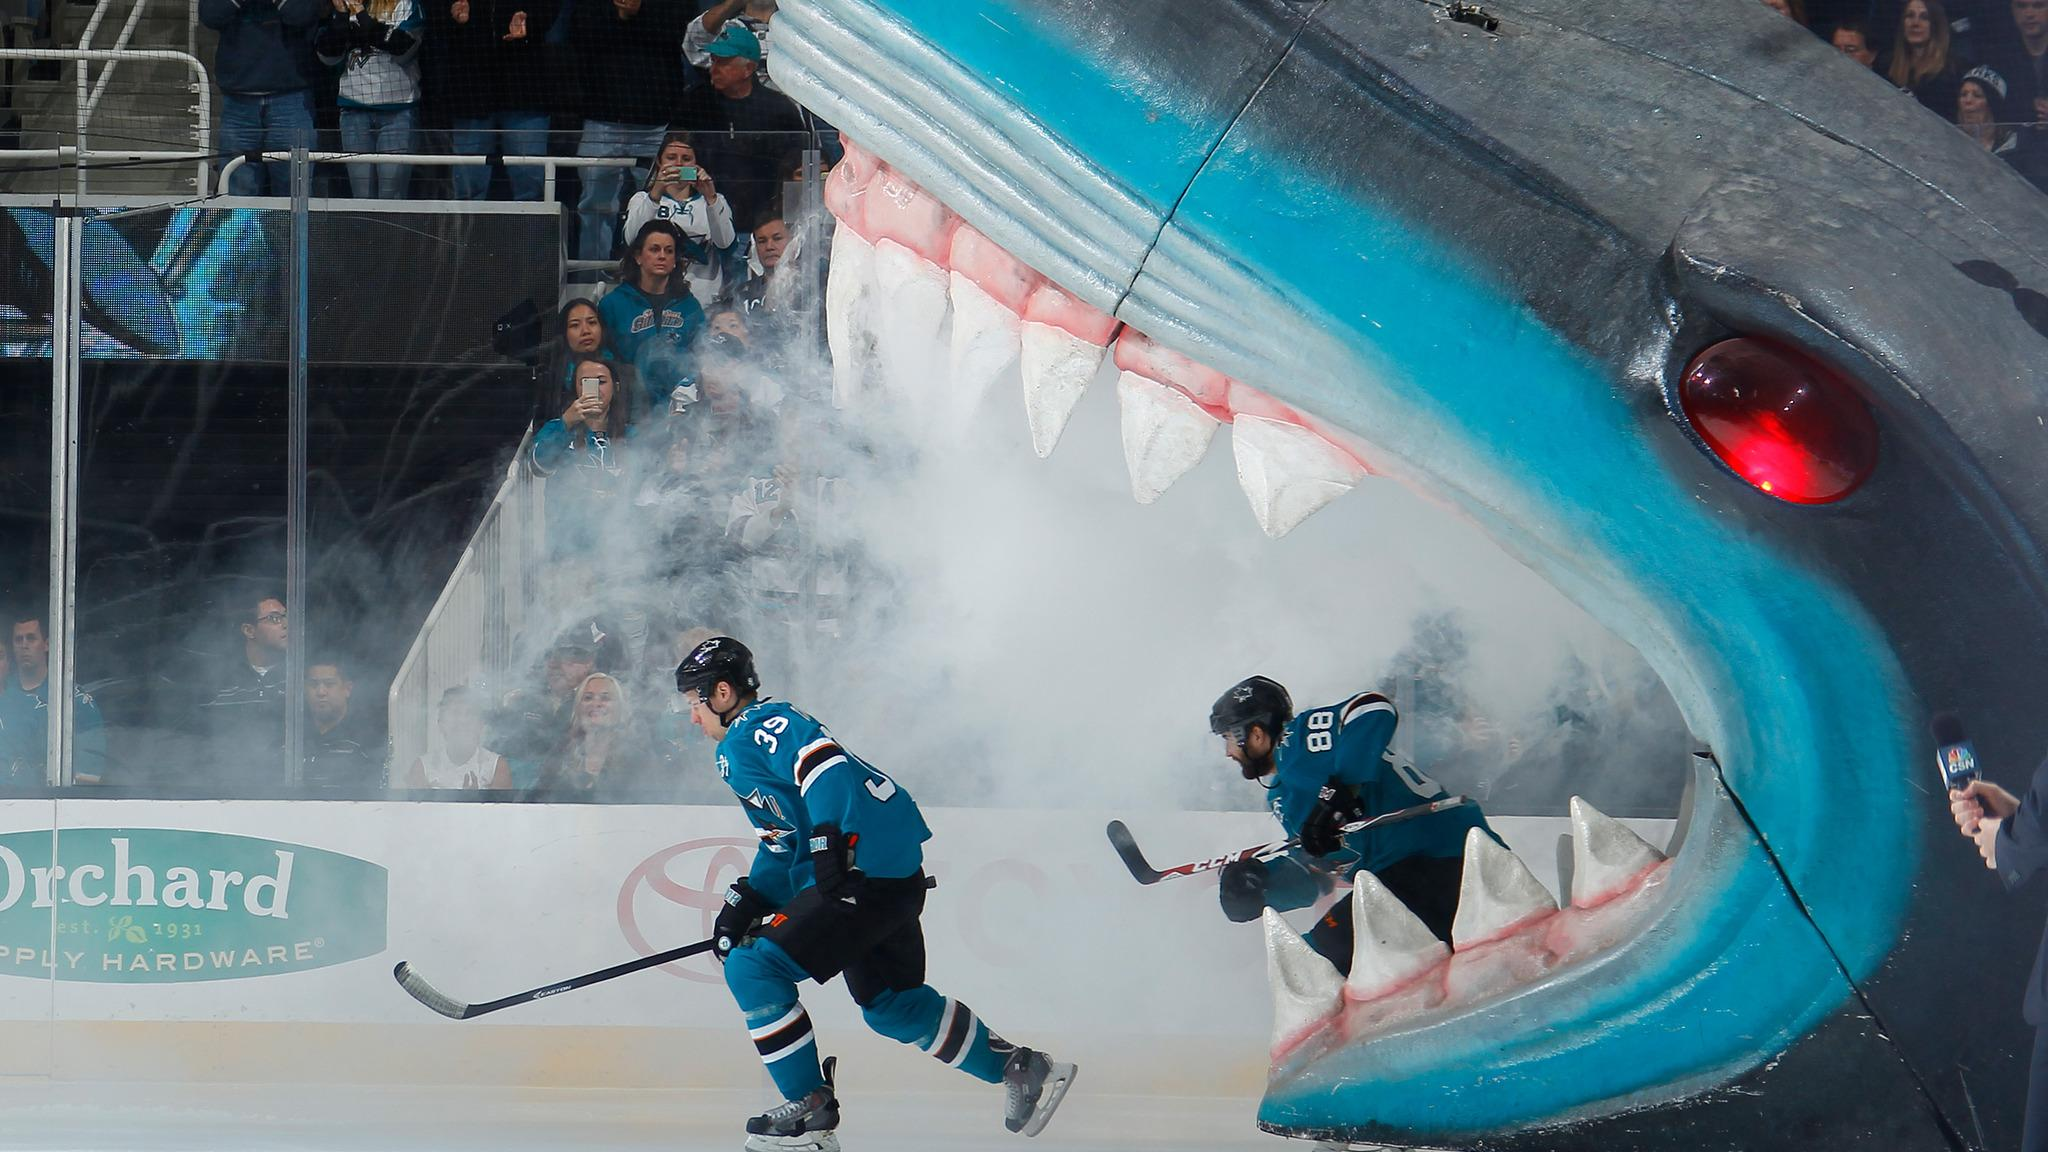 San Jose Sharks vs. Buffalo Sabres at SAP Center at San Jose